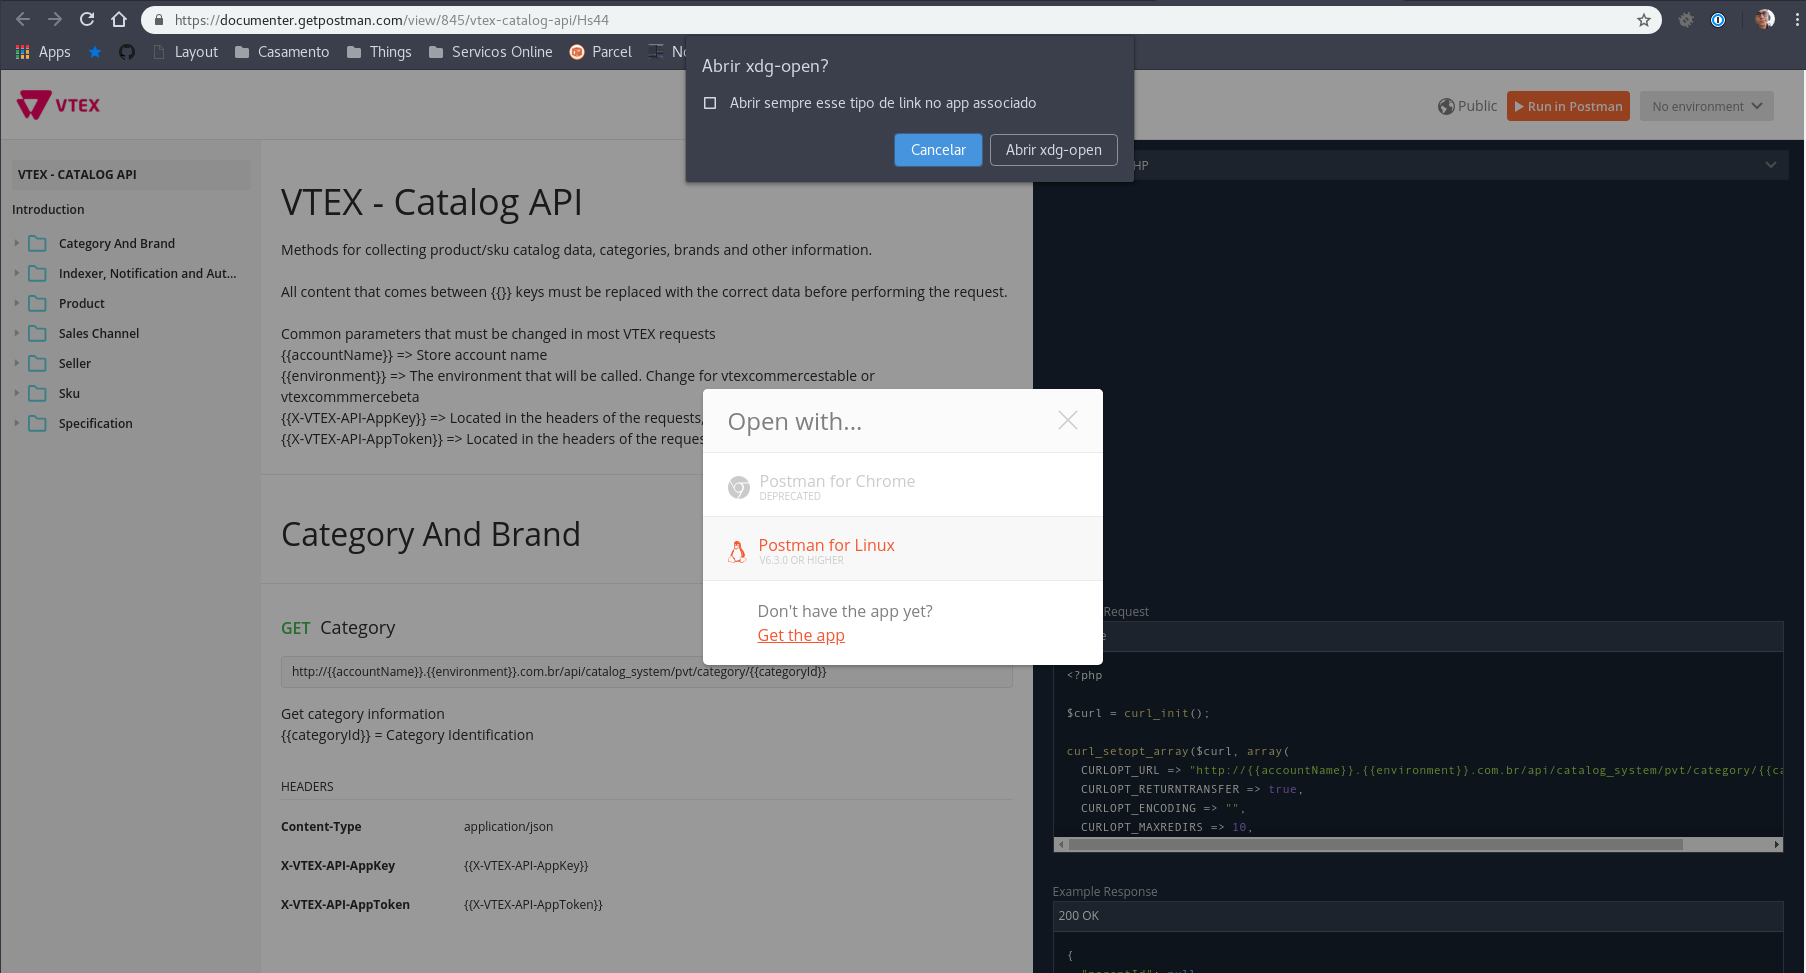 Run in Postman button doesn't open app on Linux · Issue #5273